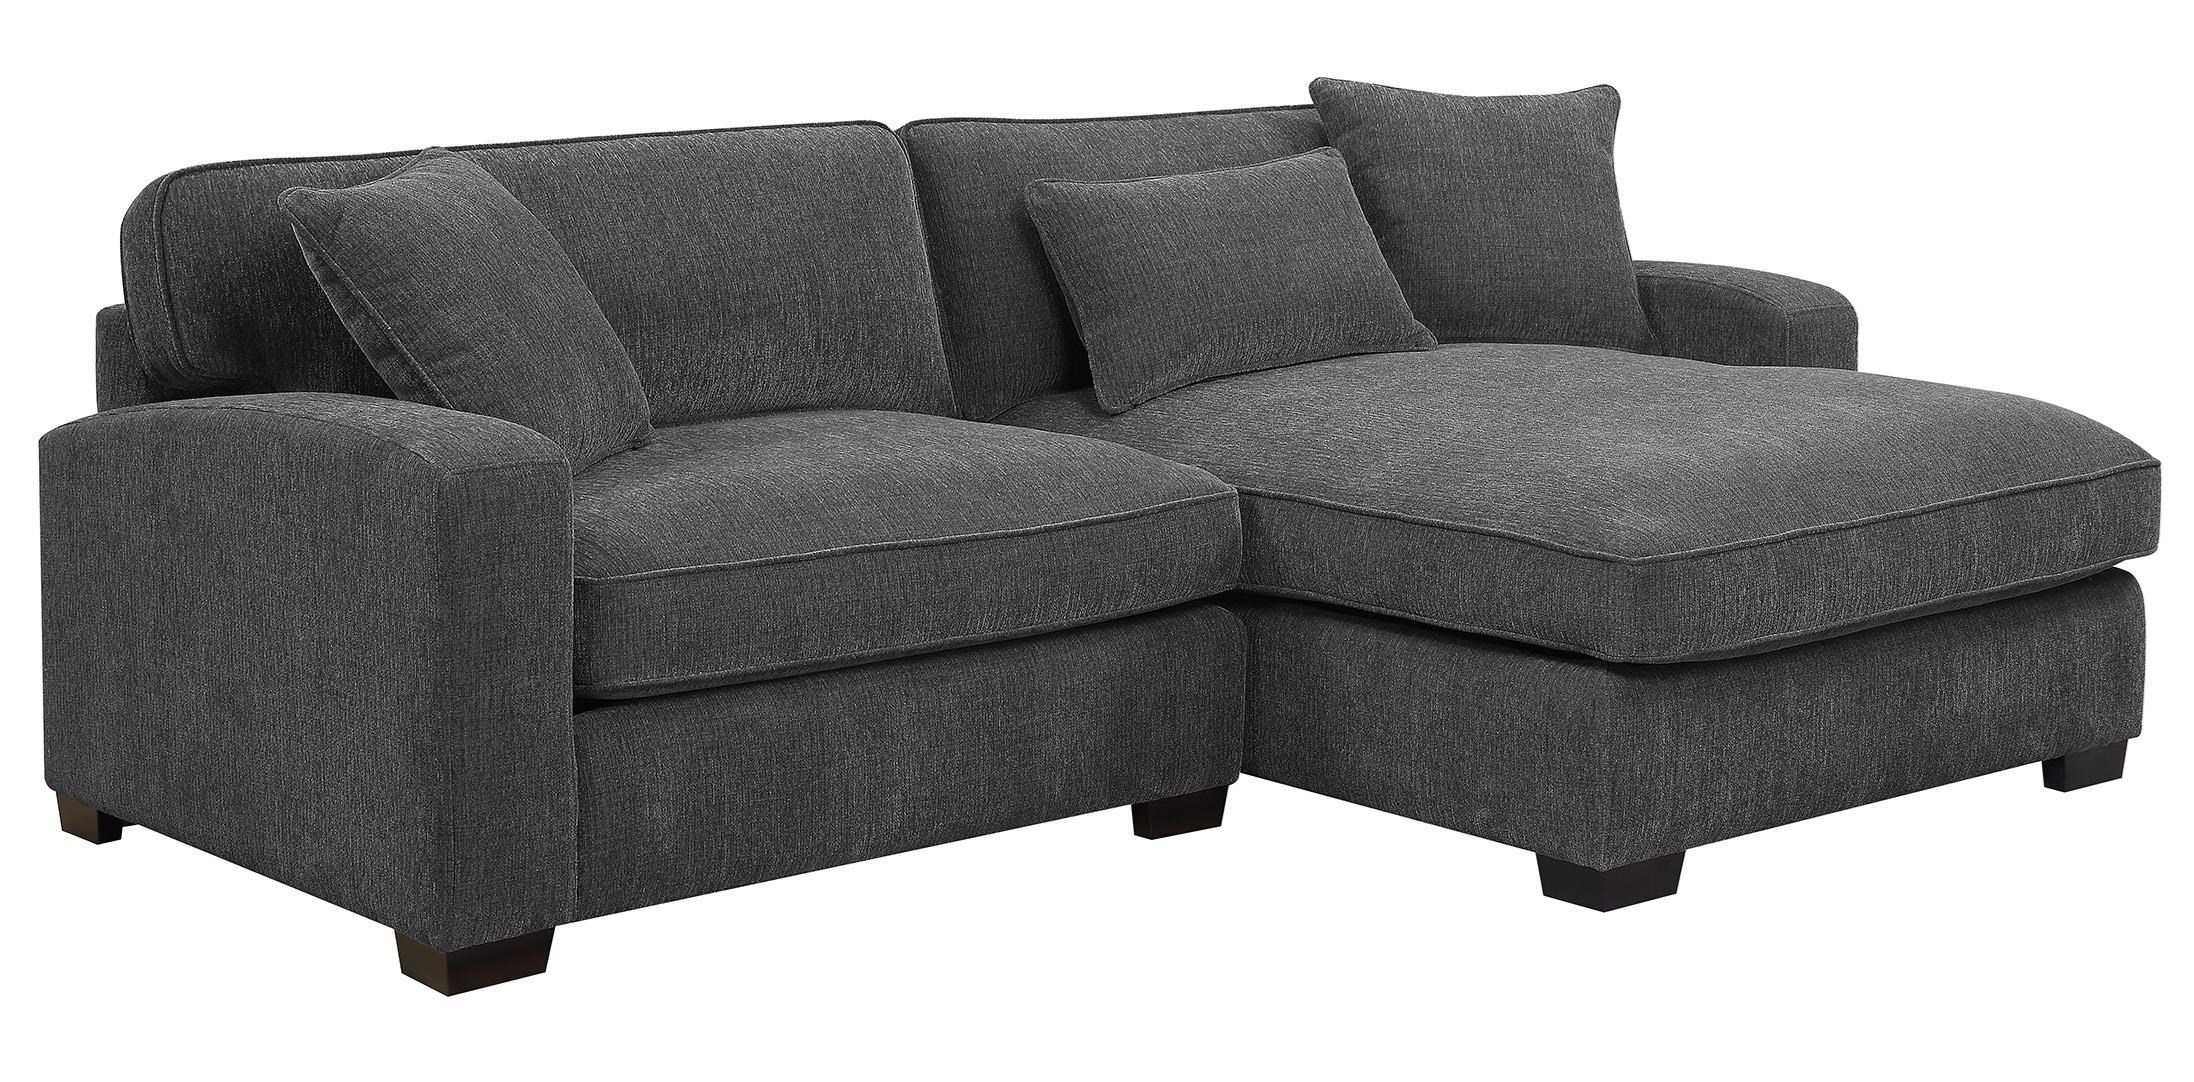 Emerald ReposeCharcoal 2 Piece Sectional Sofa ...